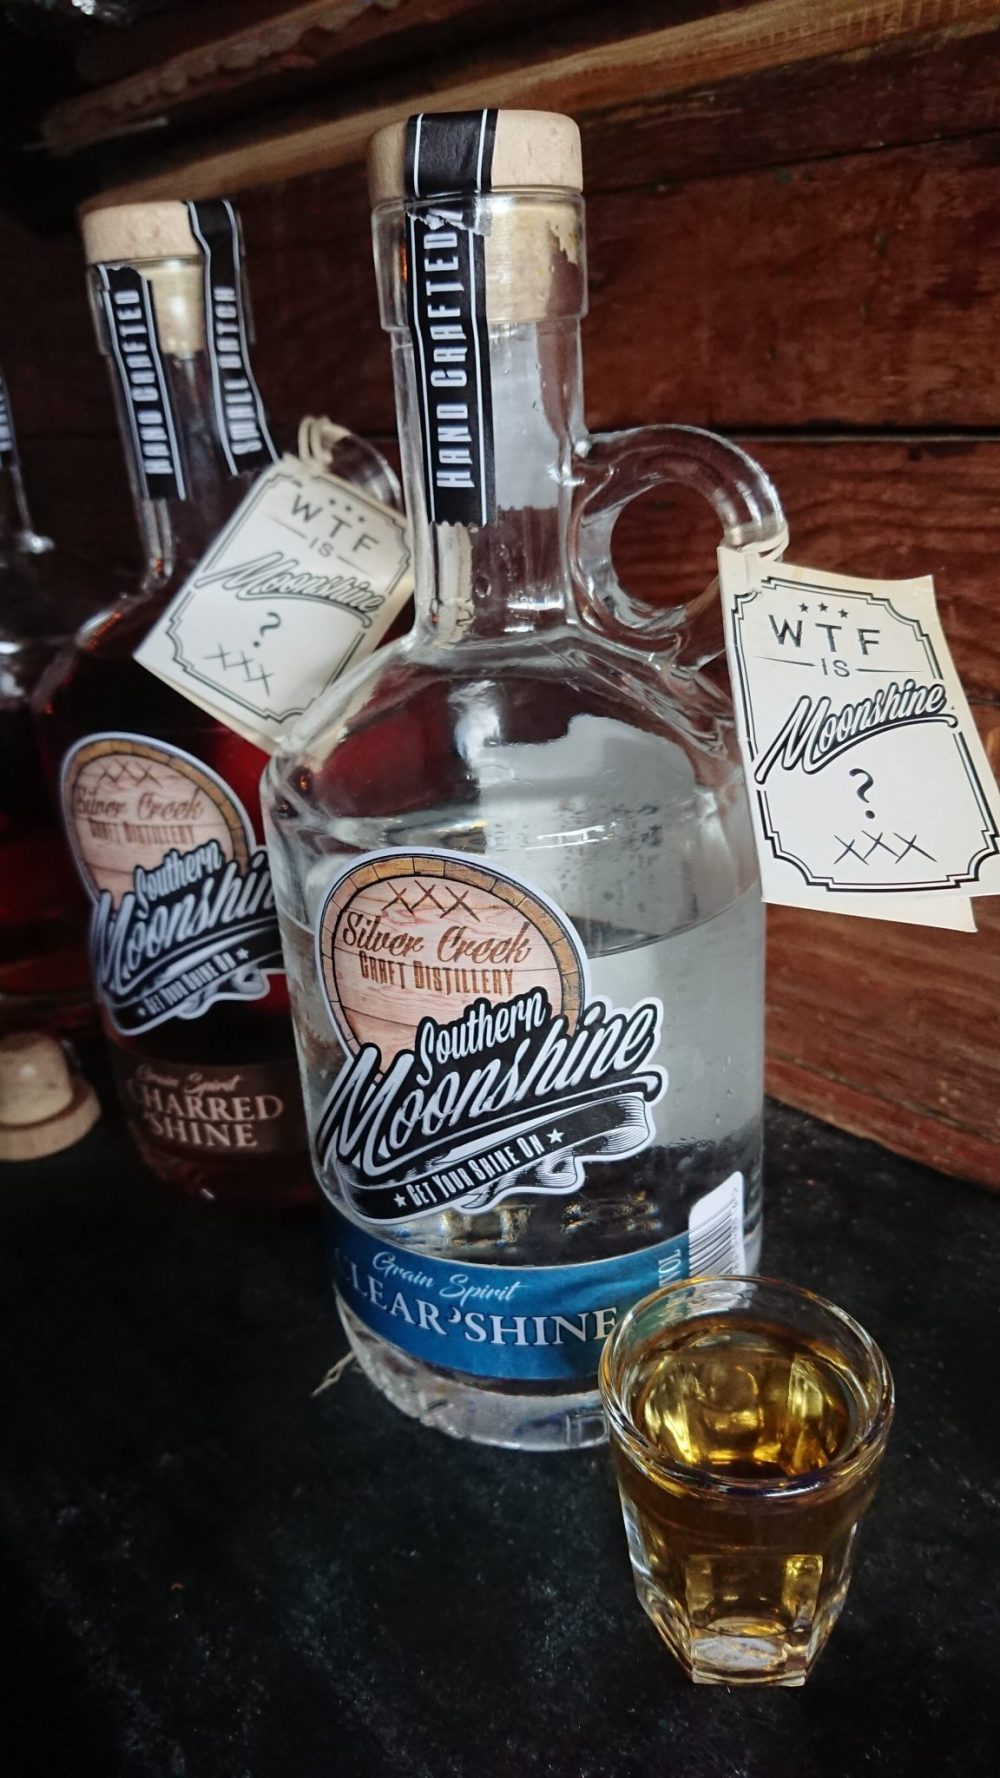 Silver Creek Craft Distillery Southern Moonshine Clear Shine sonia cabano blog eatdrinkcapetown food wine